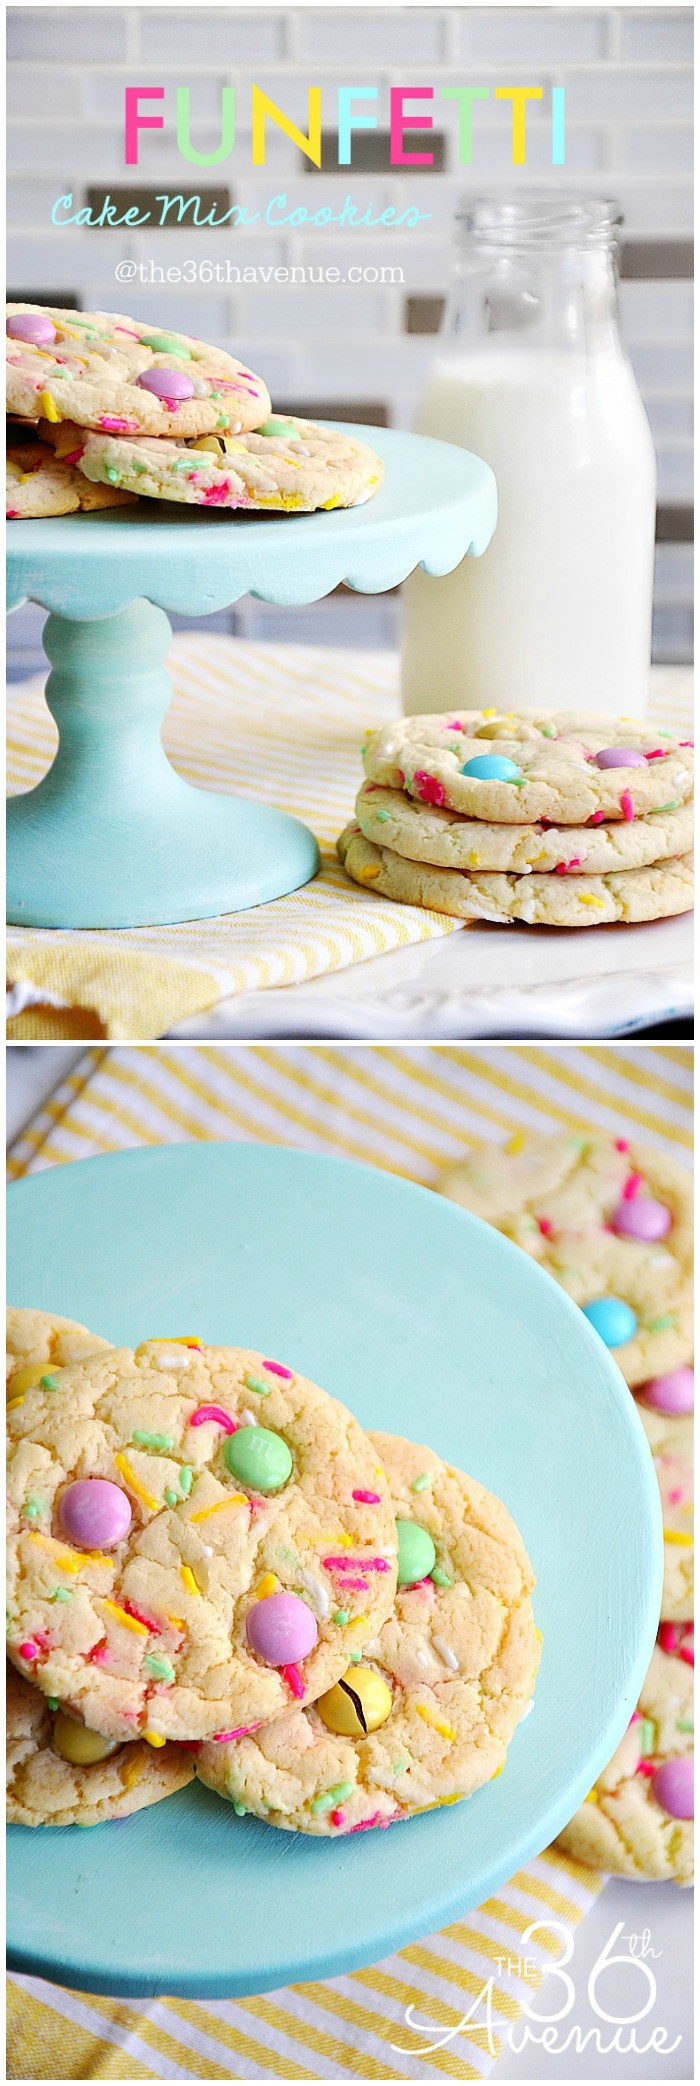 Cake Mix Cookie Recipes  The 36th AVENUE